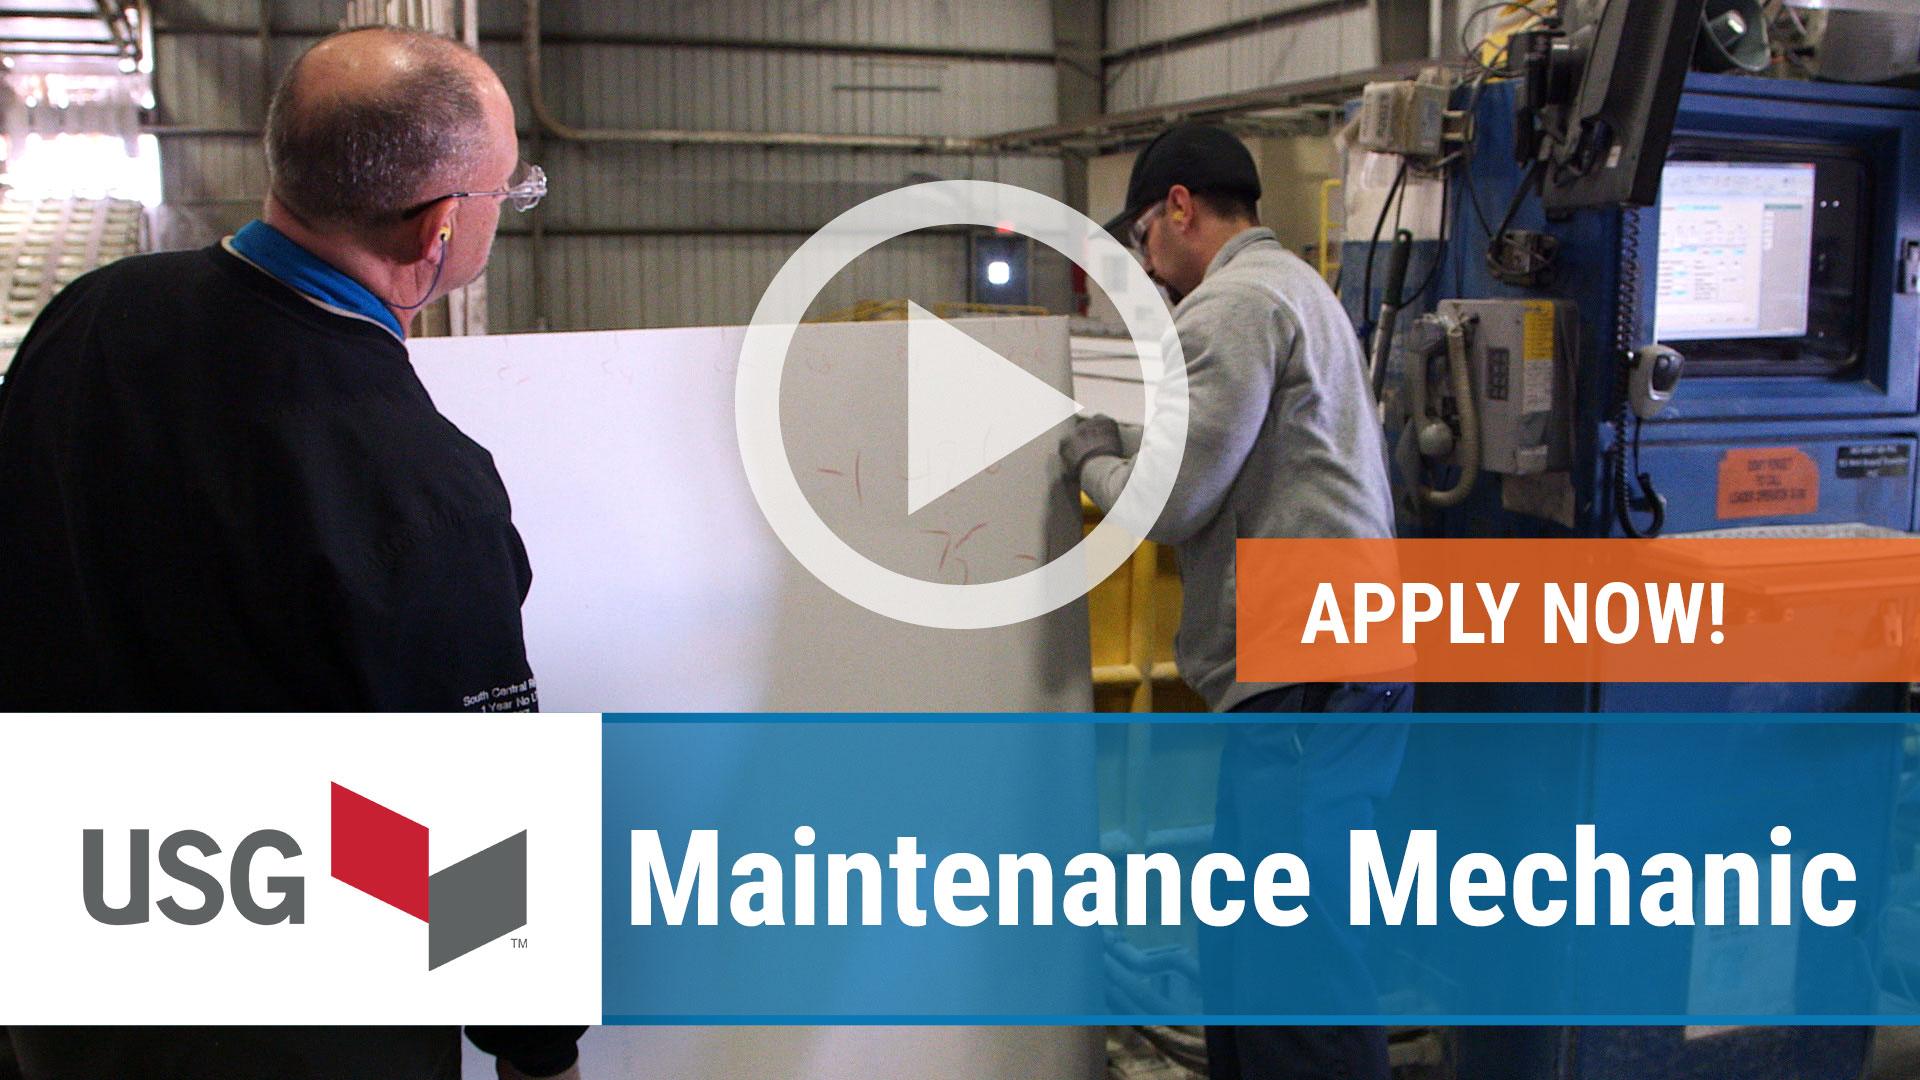 Watch our careers video for available job opening Maintenance Mechanic in East Chicago, Indiana, USA